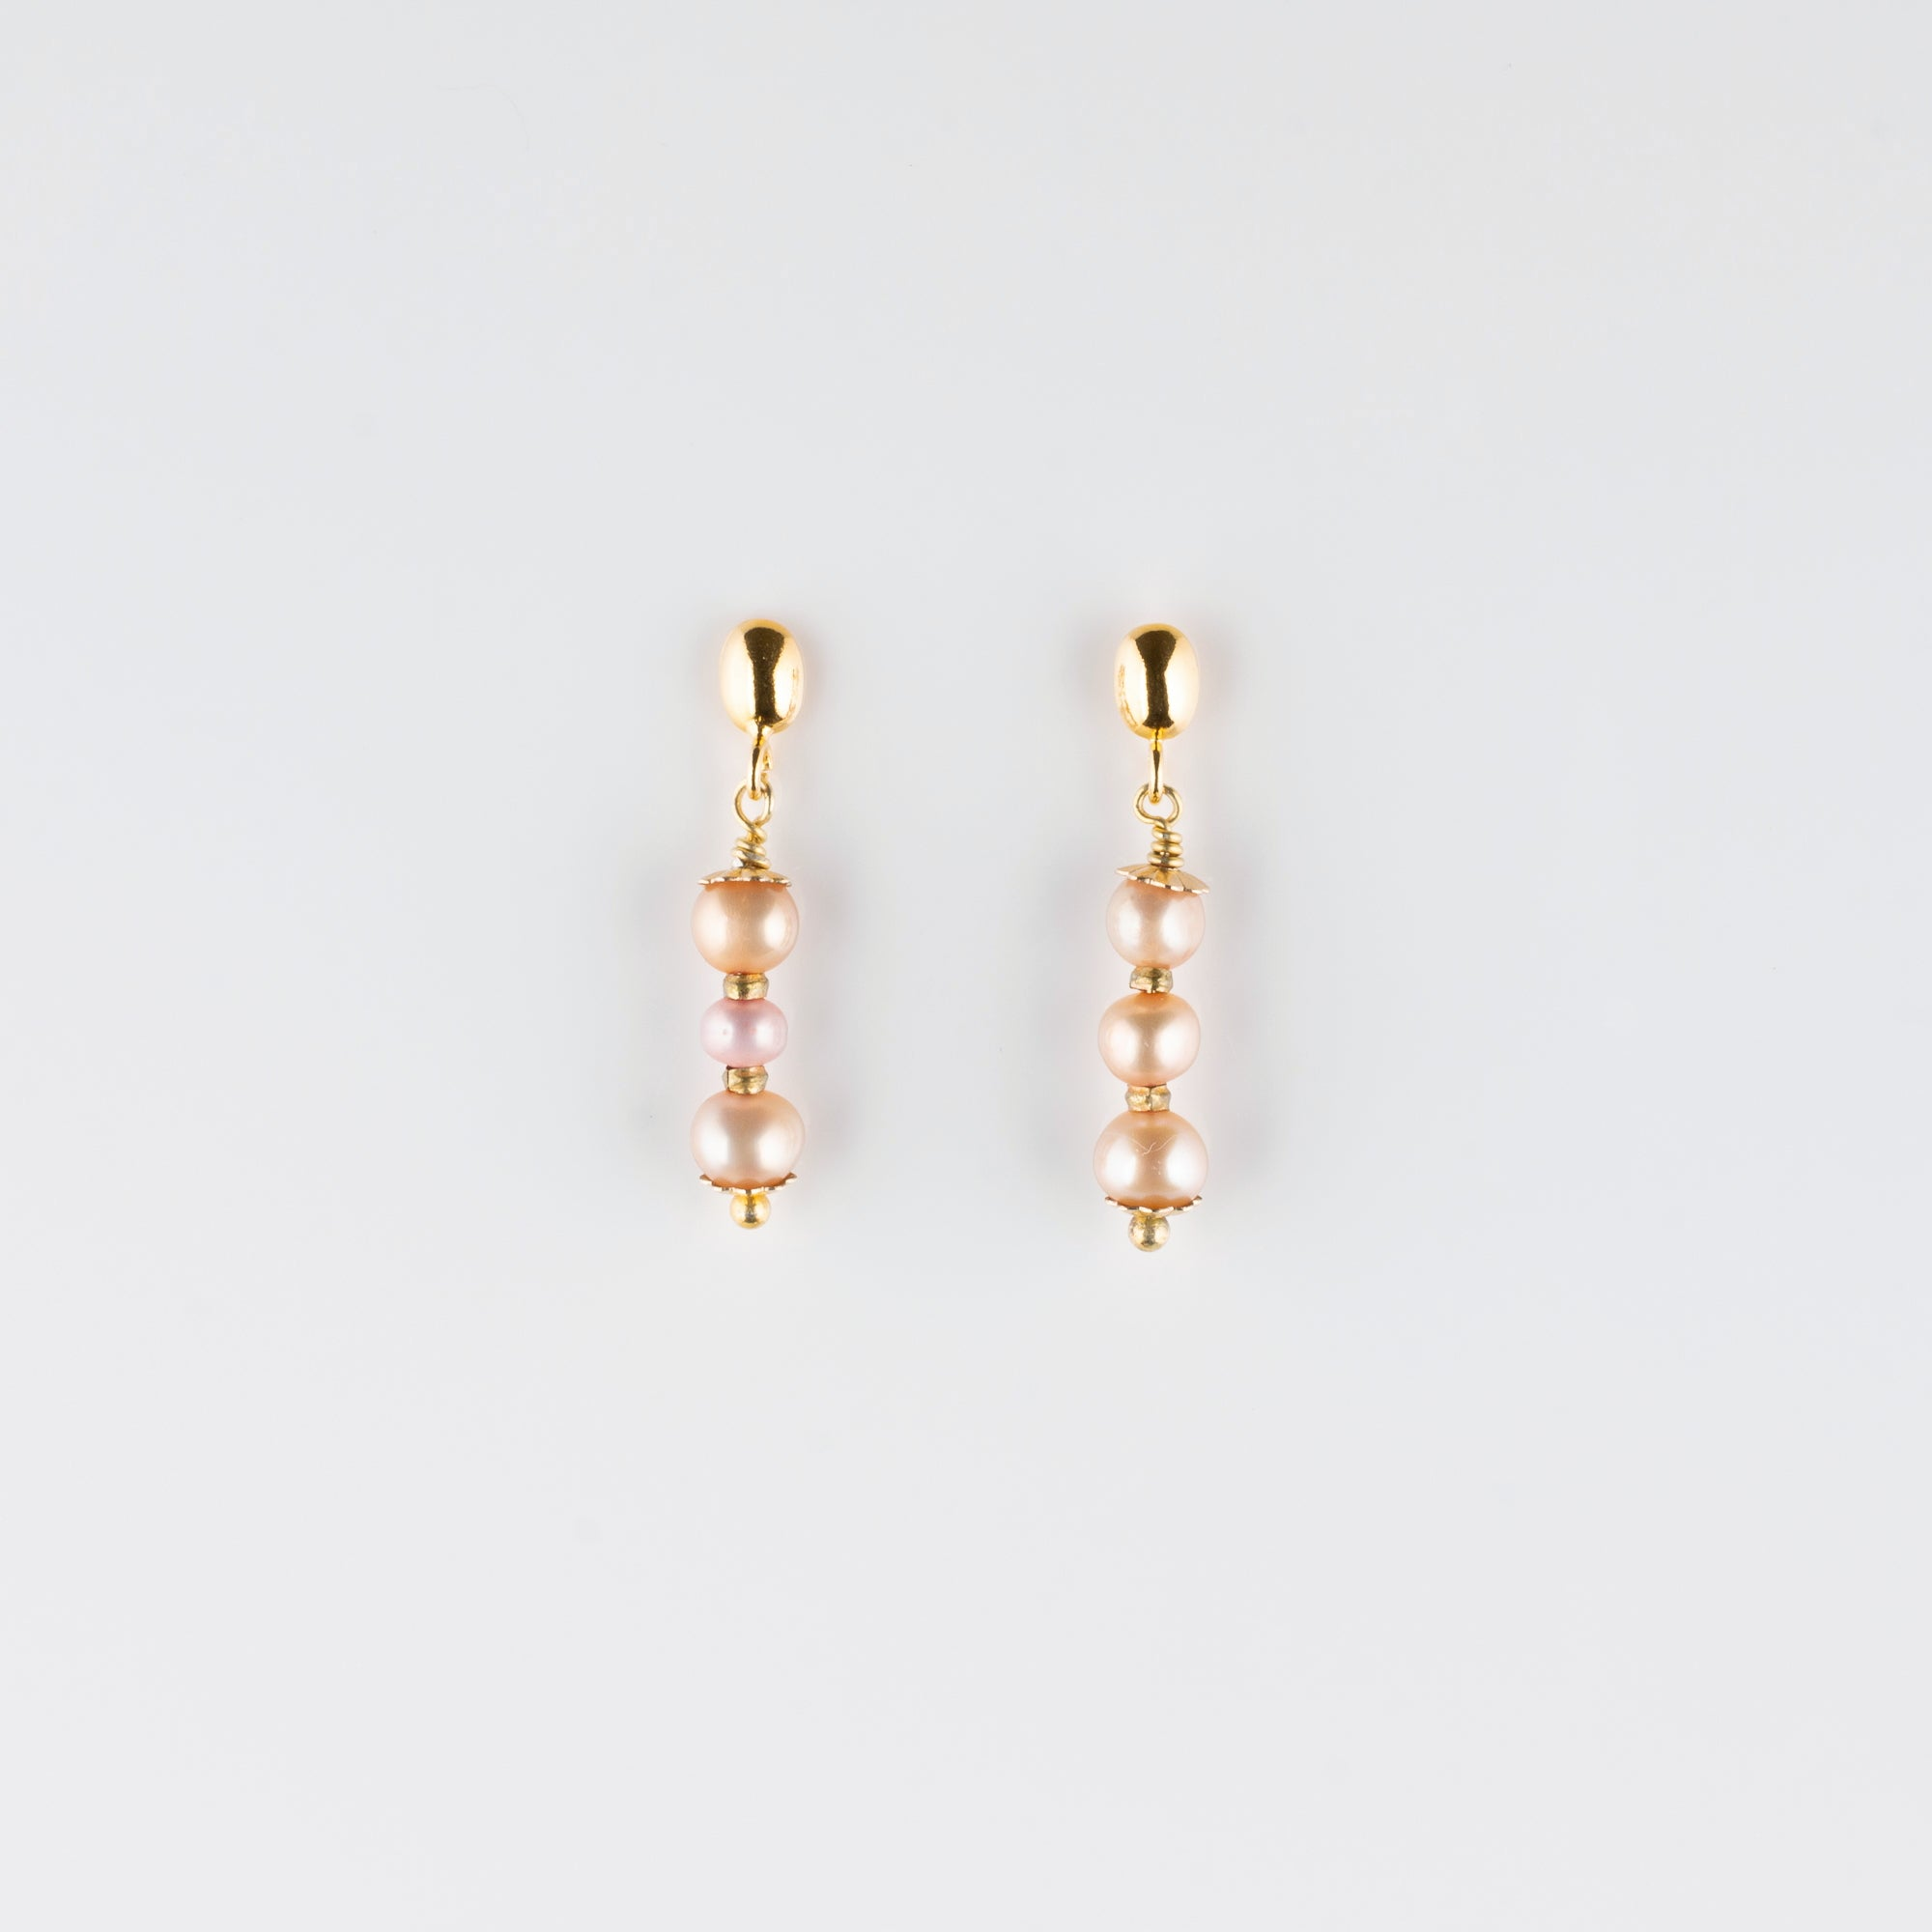 VERMEIL POST EARRINGS // TRIPLE PEARL